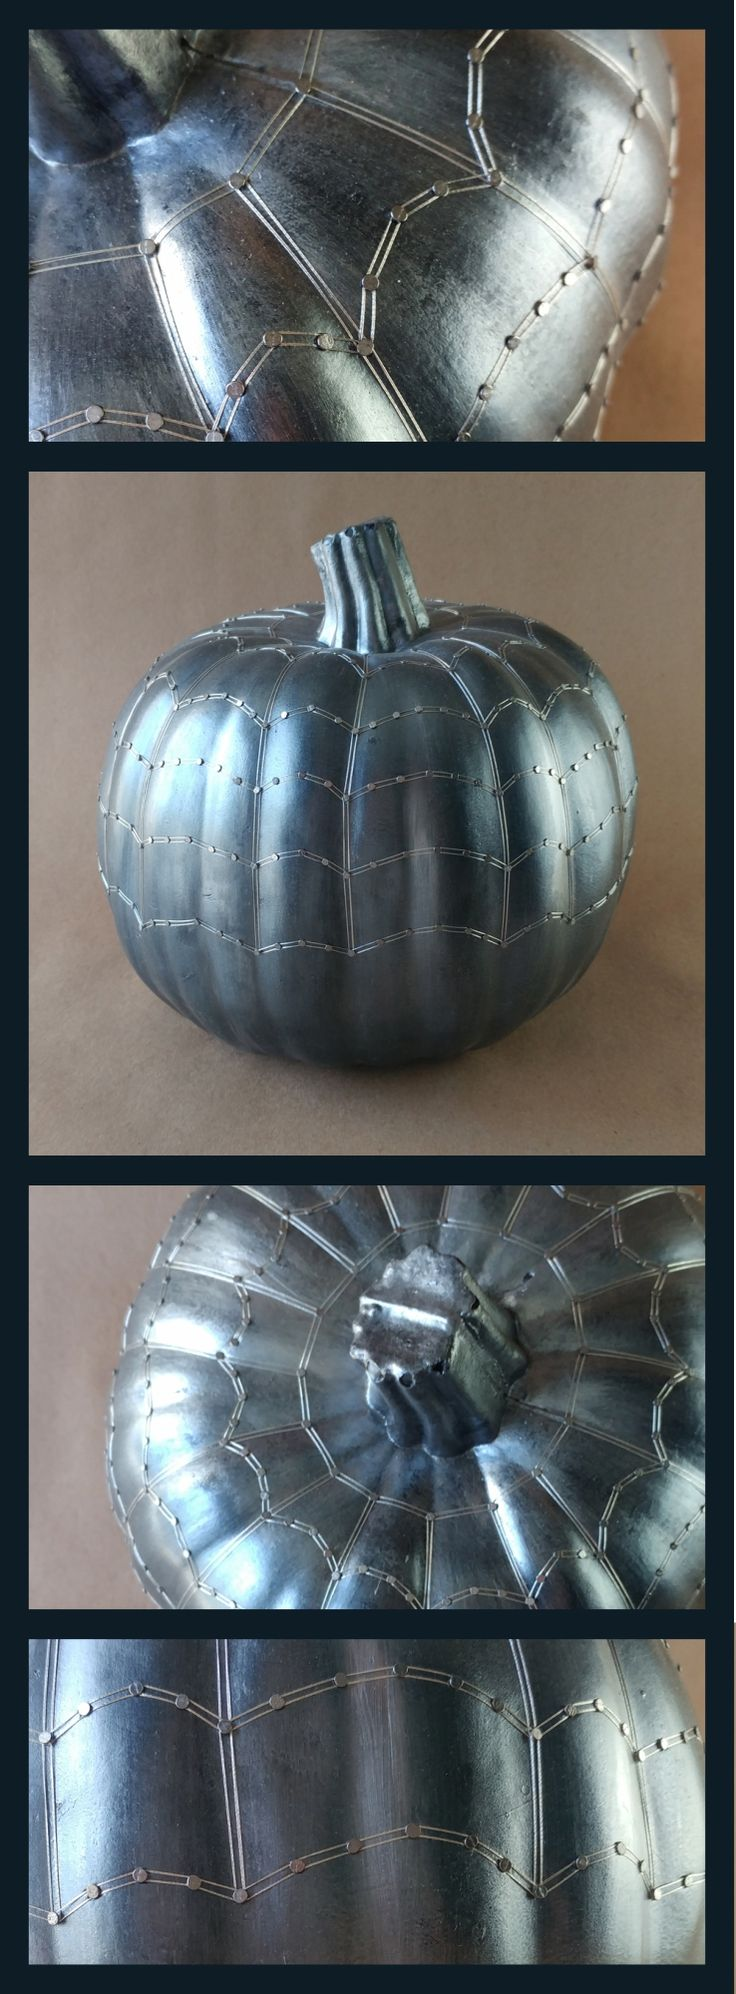 One-of-a-kind, handmade halloween pumpkin perfect for fall decorations and events like parties and weddings